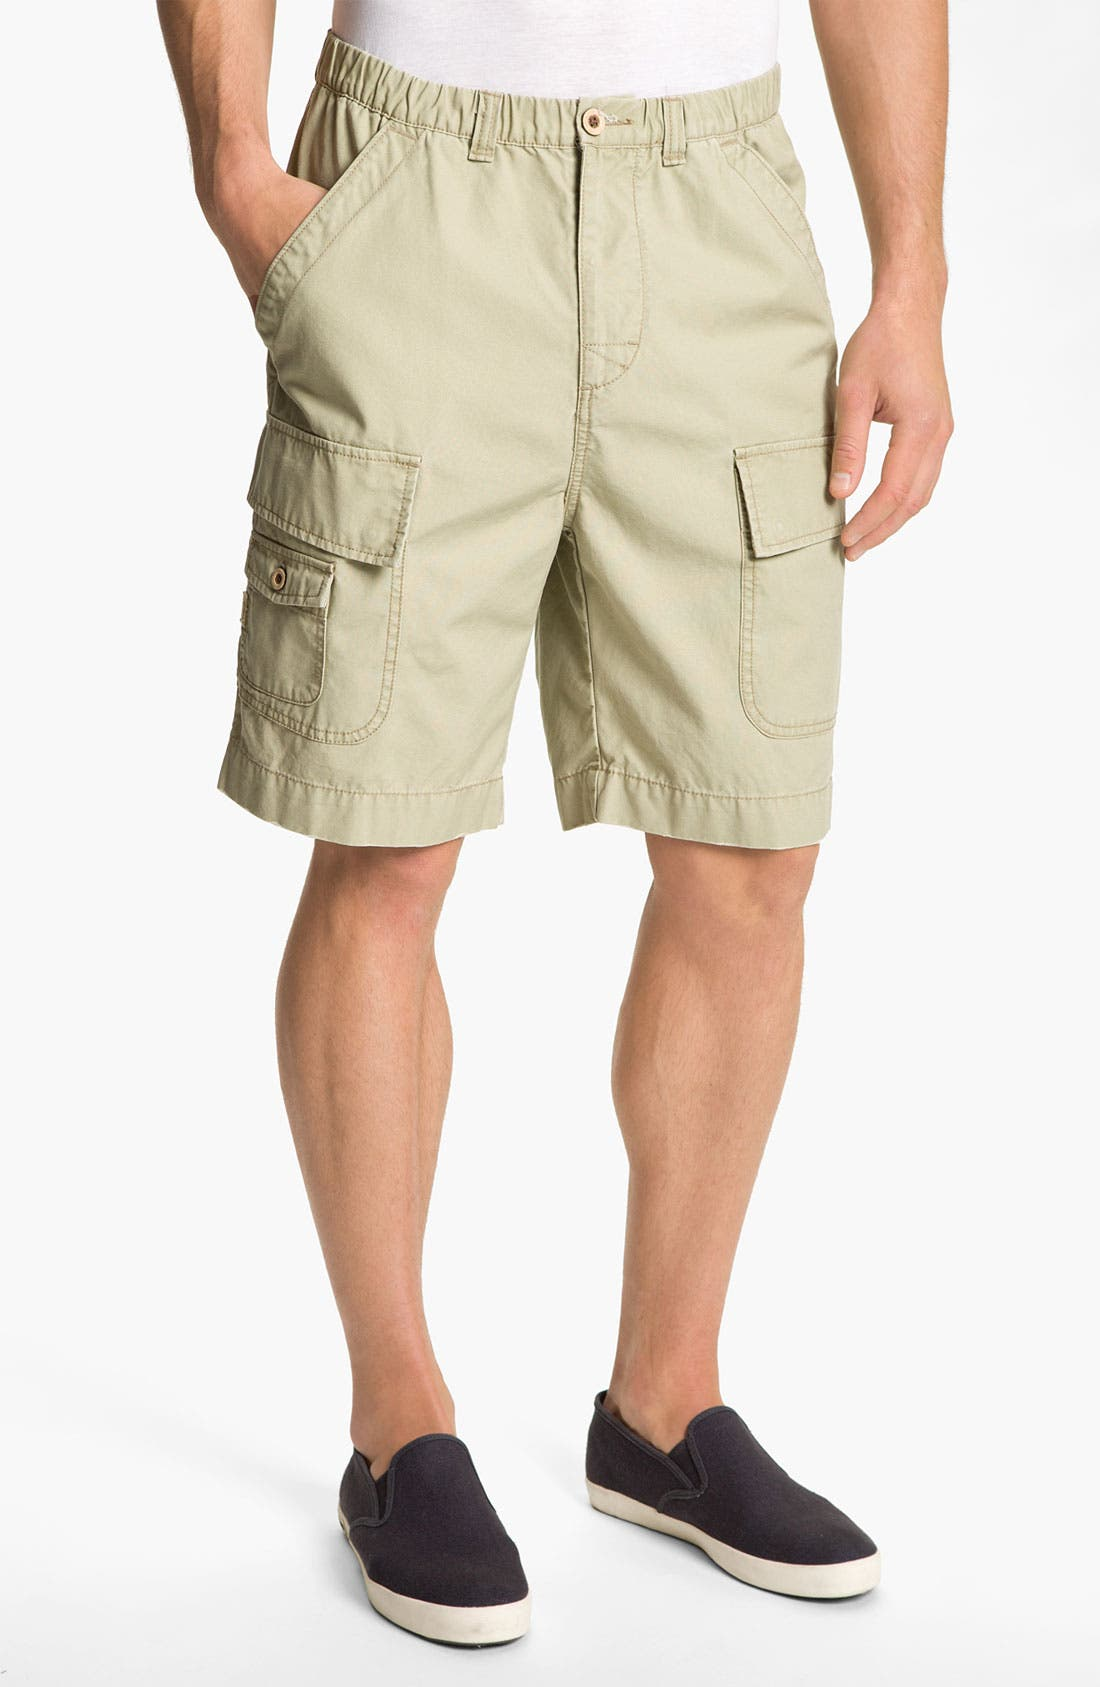 Alternate Image 1 Selected - Tommy Bahama 'New Largo' Cargo Shorts (Big)